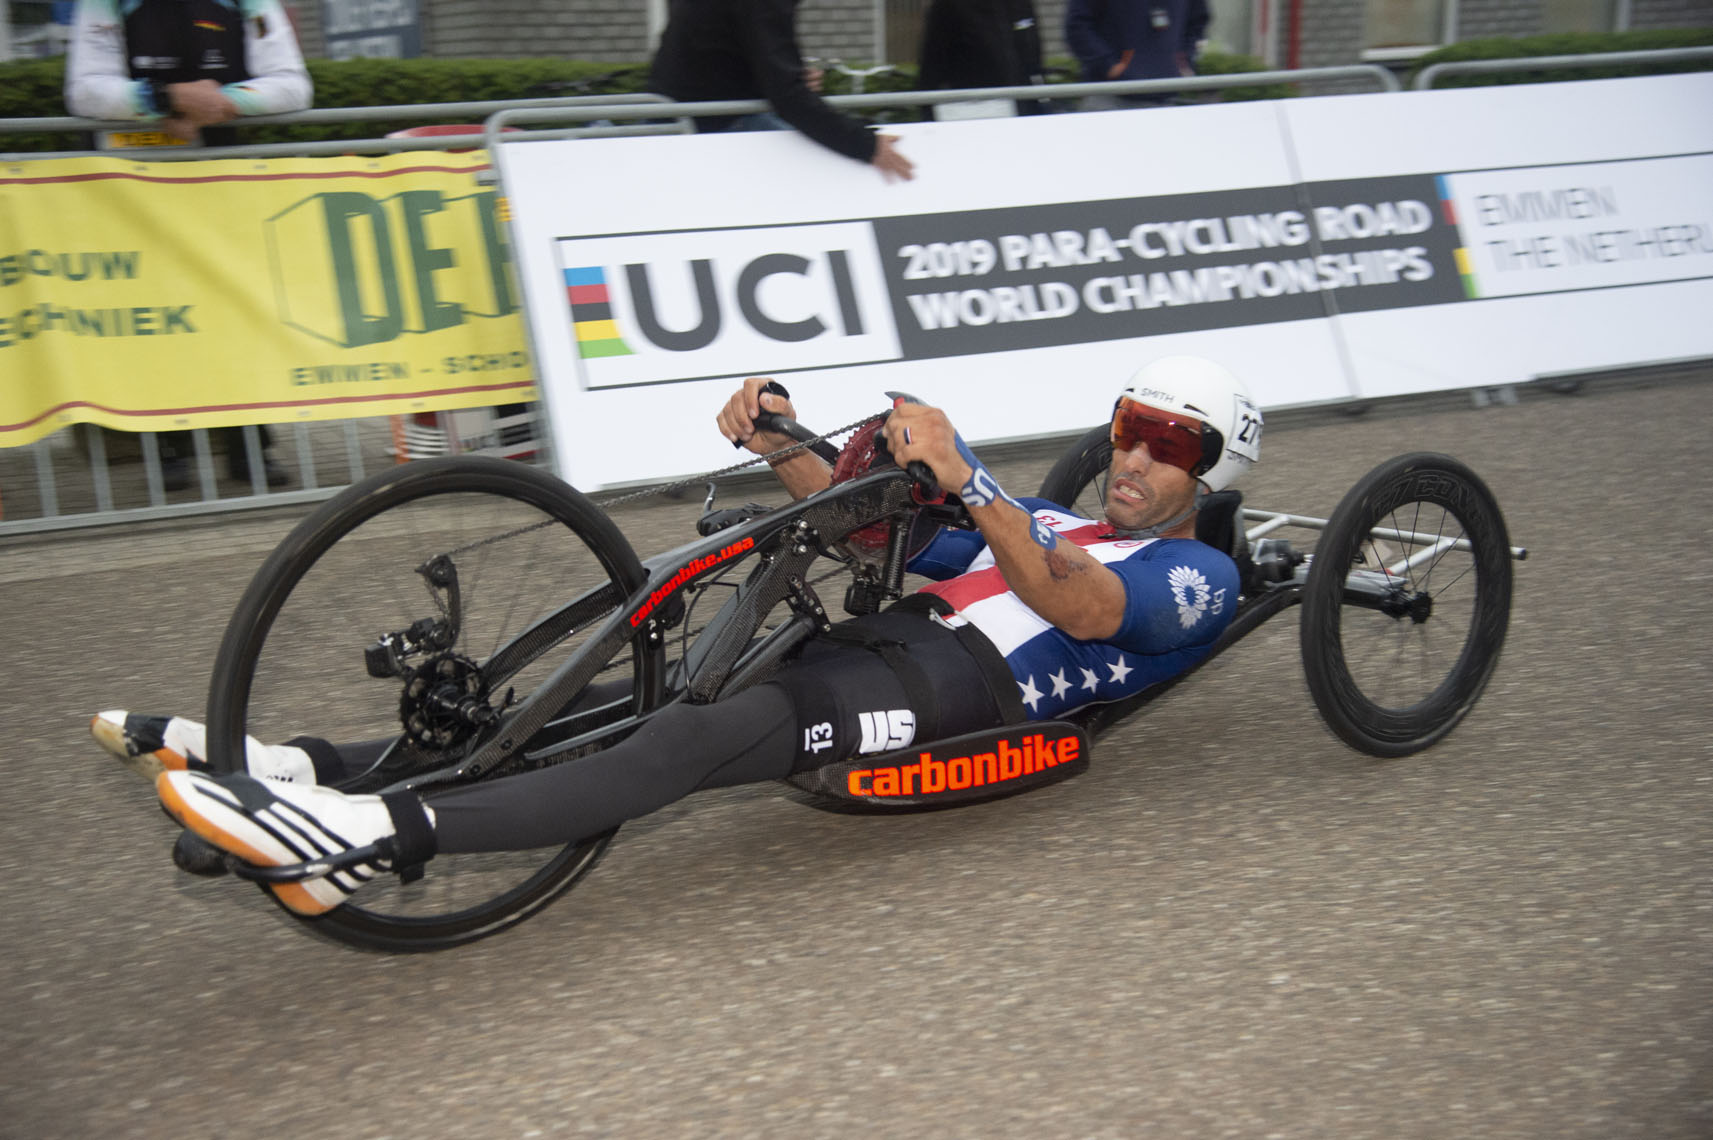 Brandon Lyons, 2019 Paracycling Road World Championships